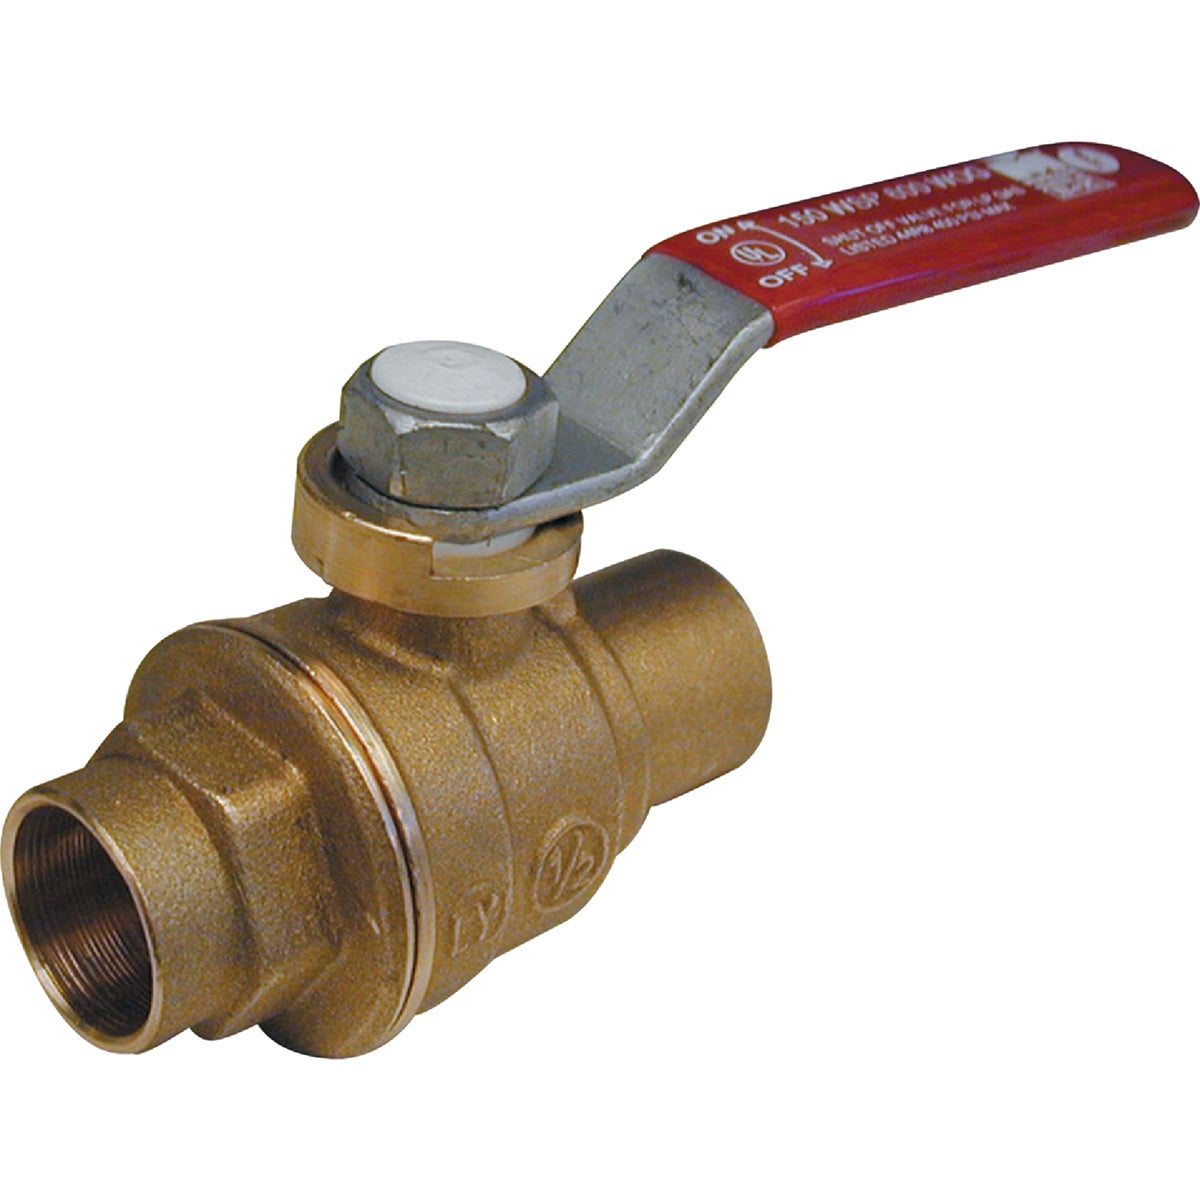 "3/4"" SWT BALL VALVE - 107-454NL by Mueller B K"